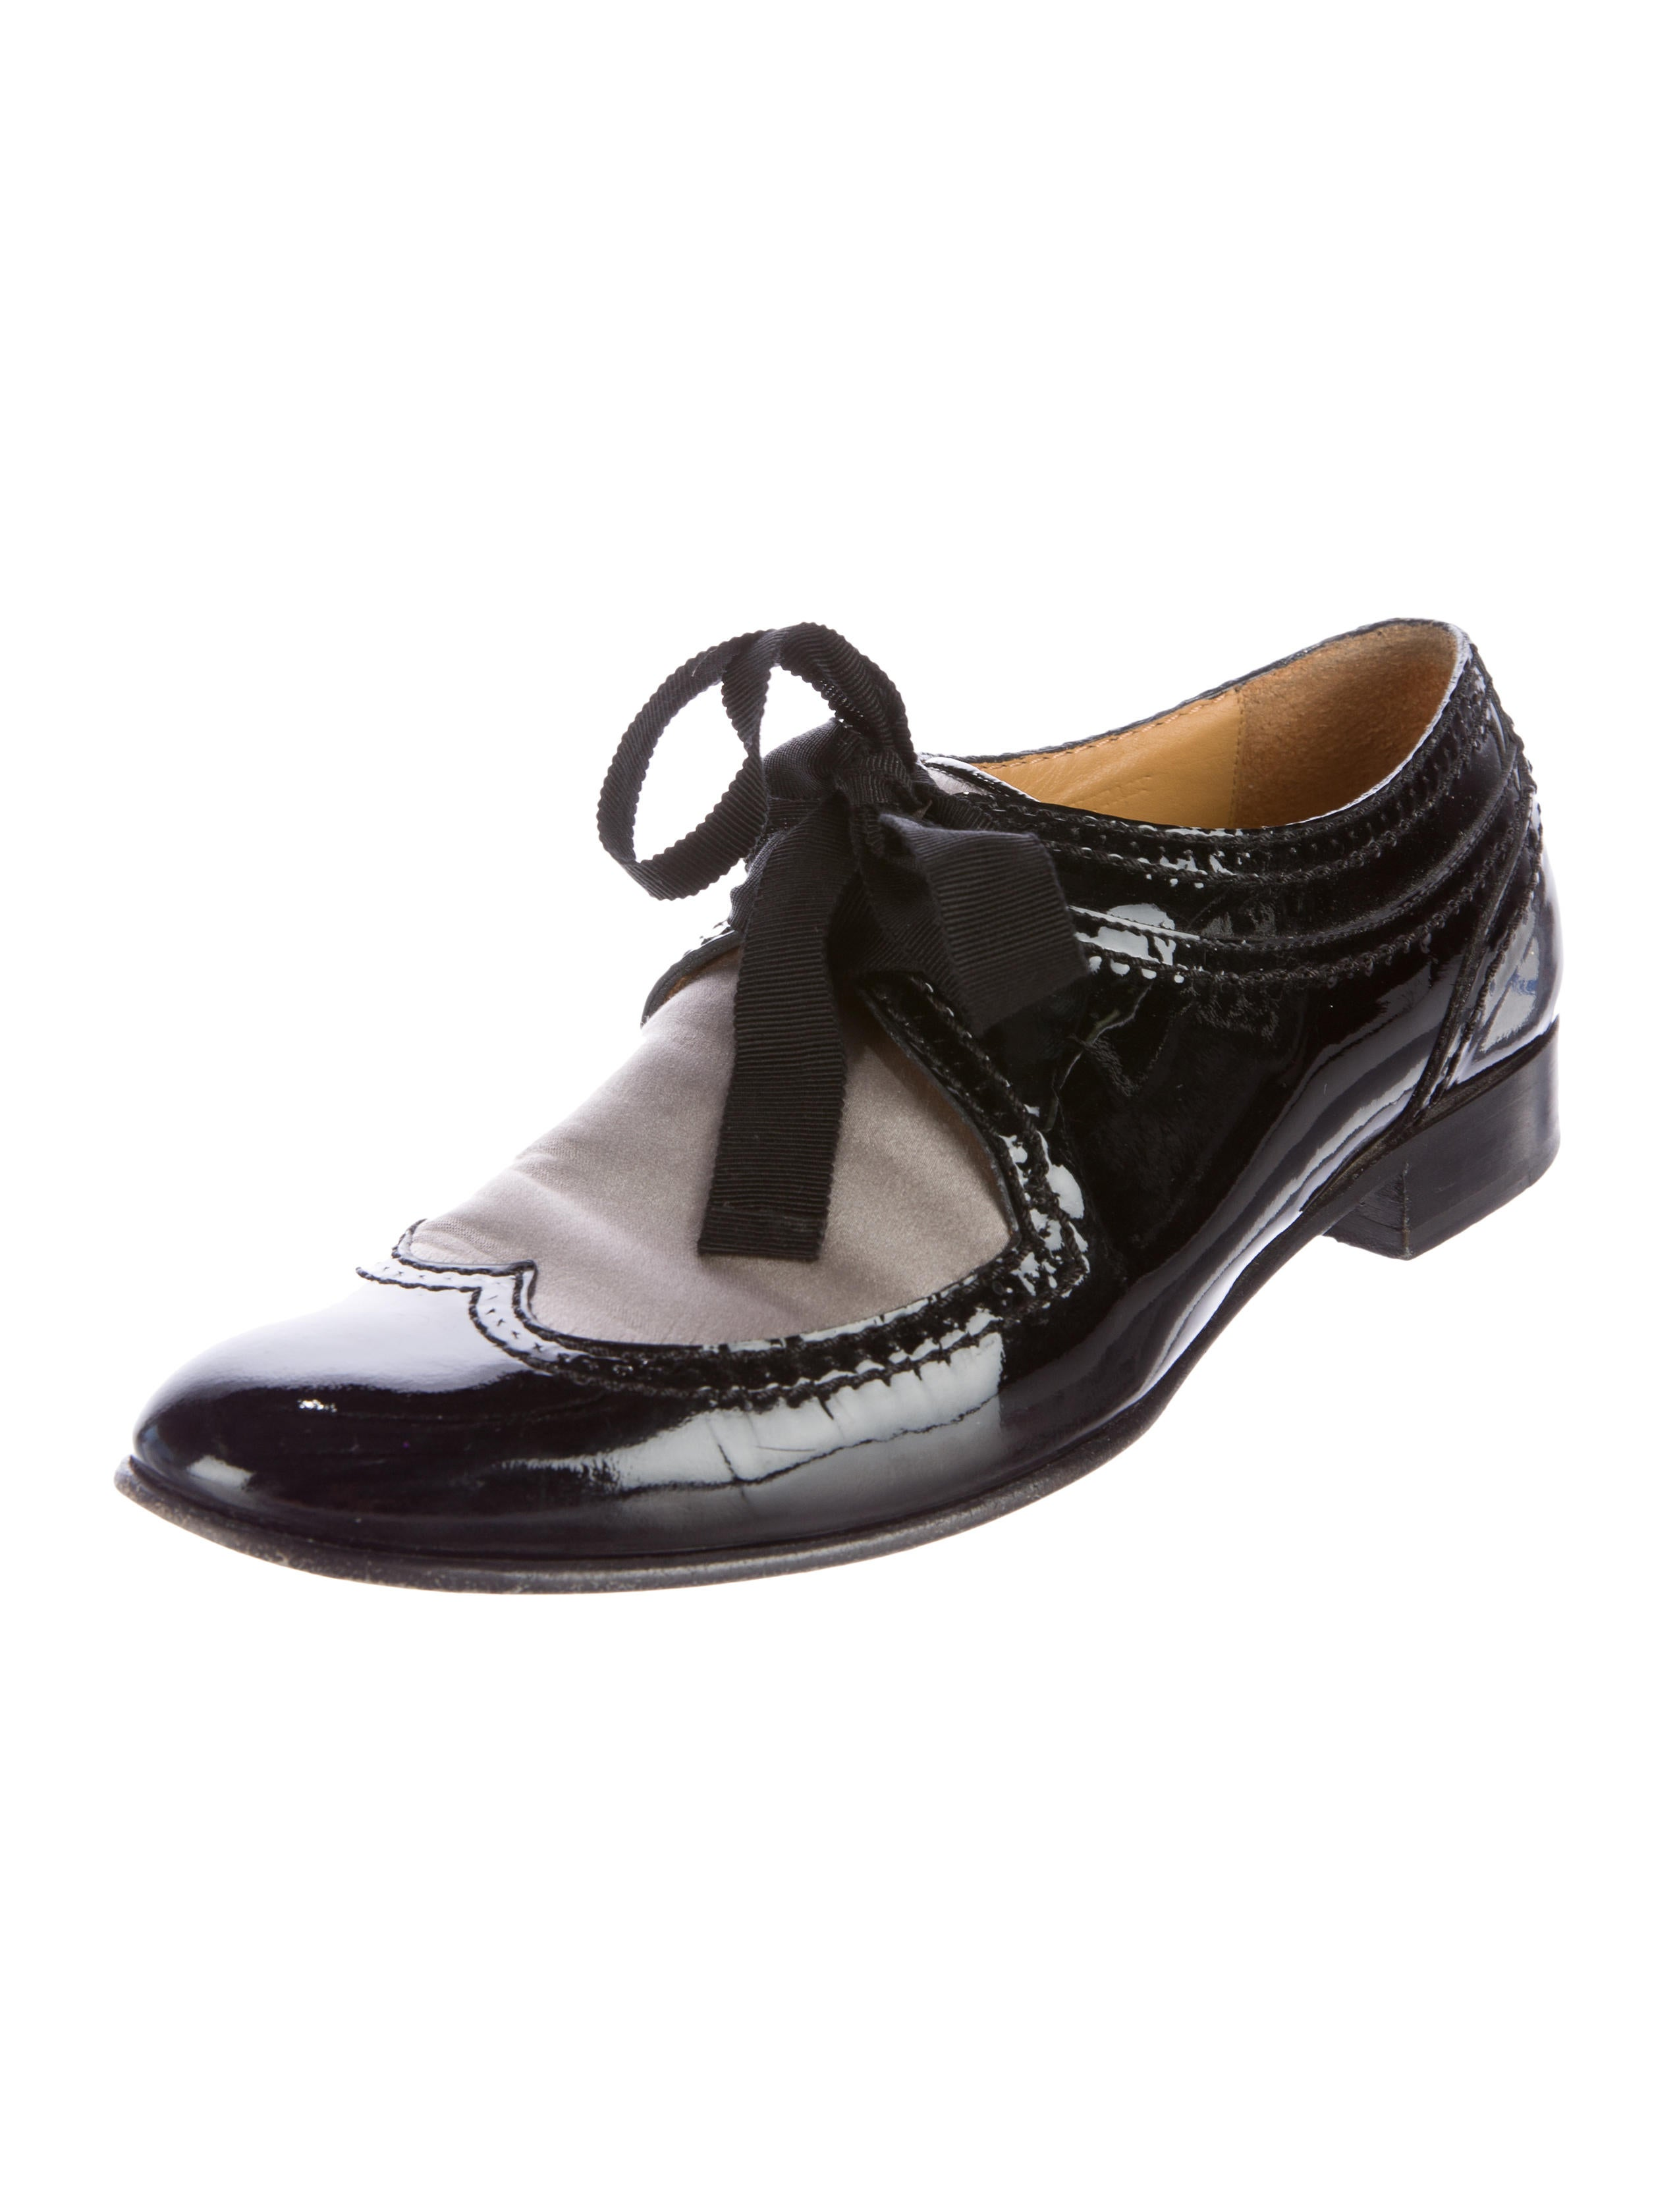 lanvin patent shoes lan48639 the realreal